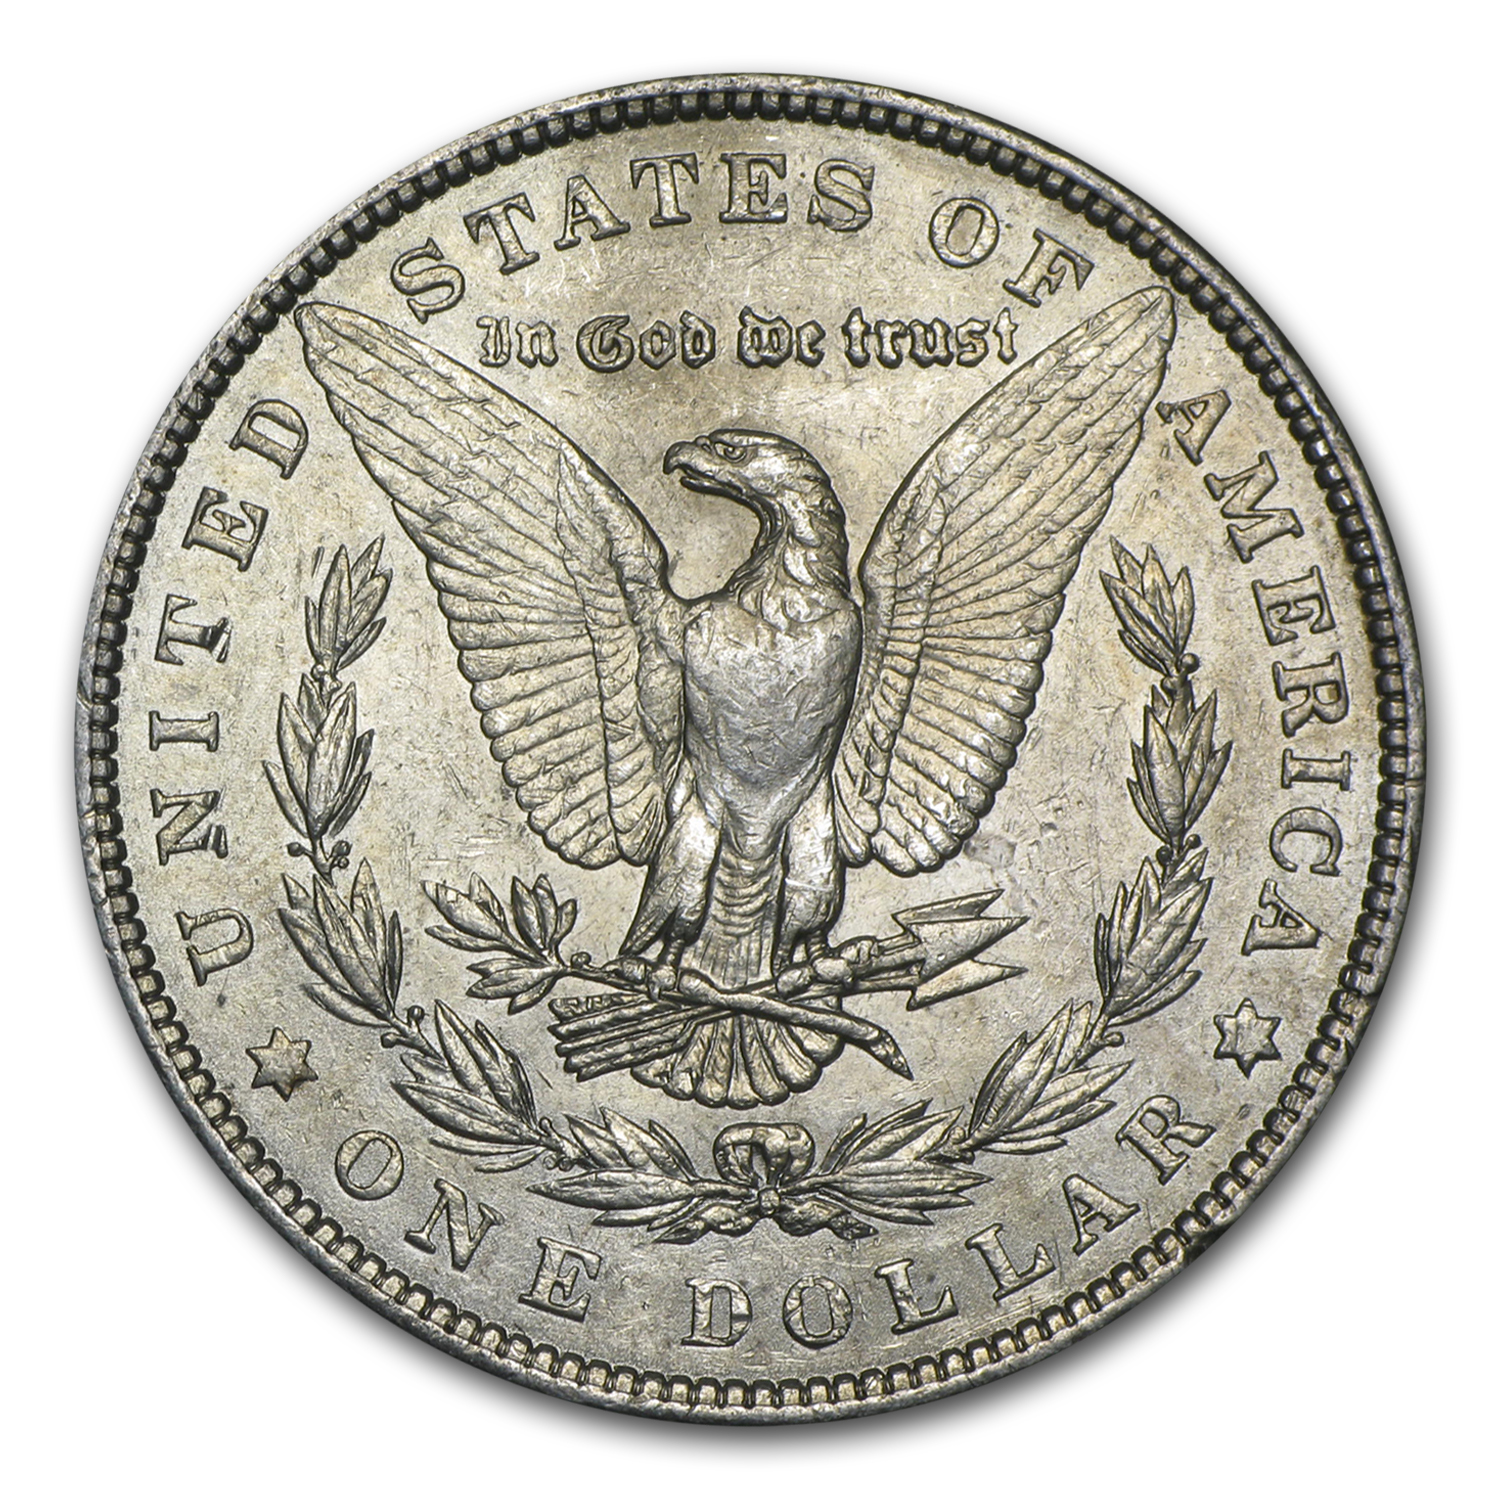 1901 Morgan Dollar - Almost Uncirculated